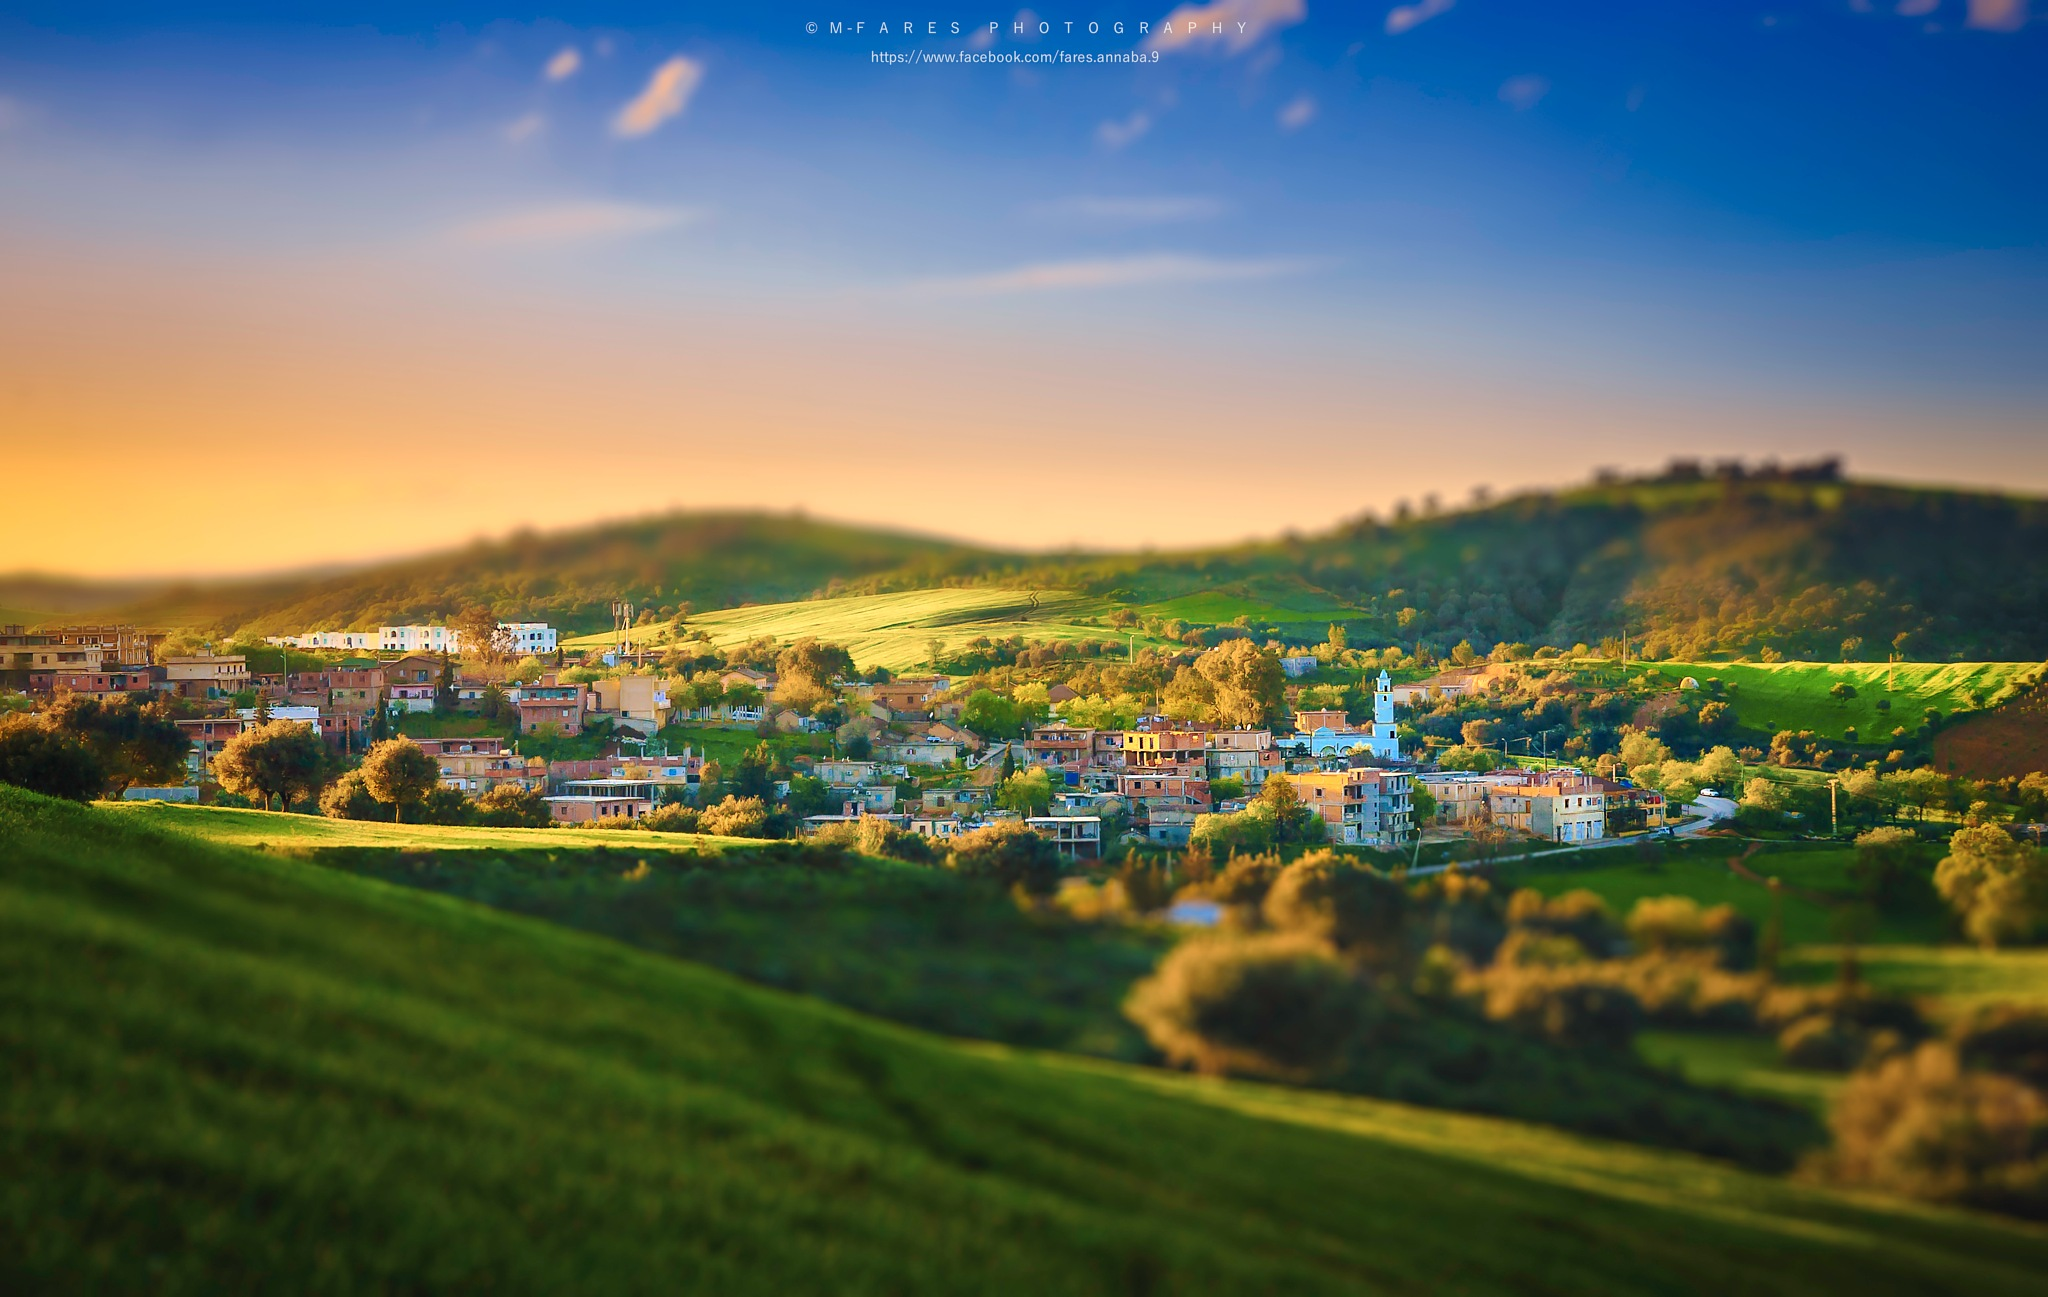 The sunset at village by Fares Annaba